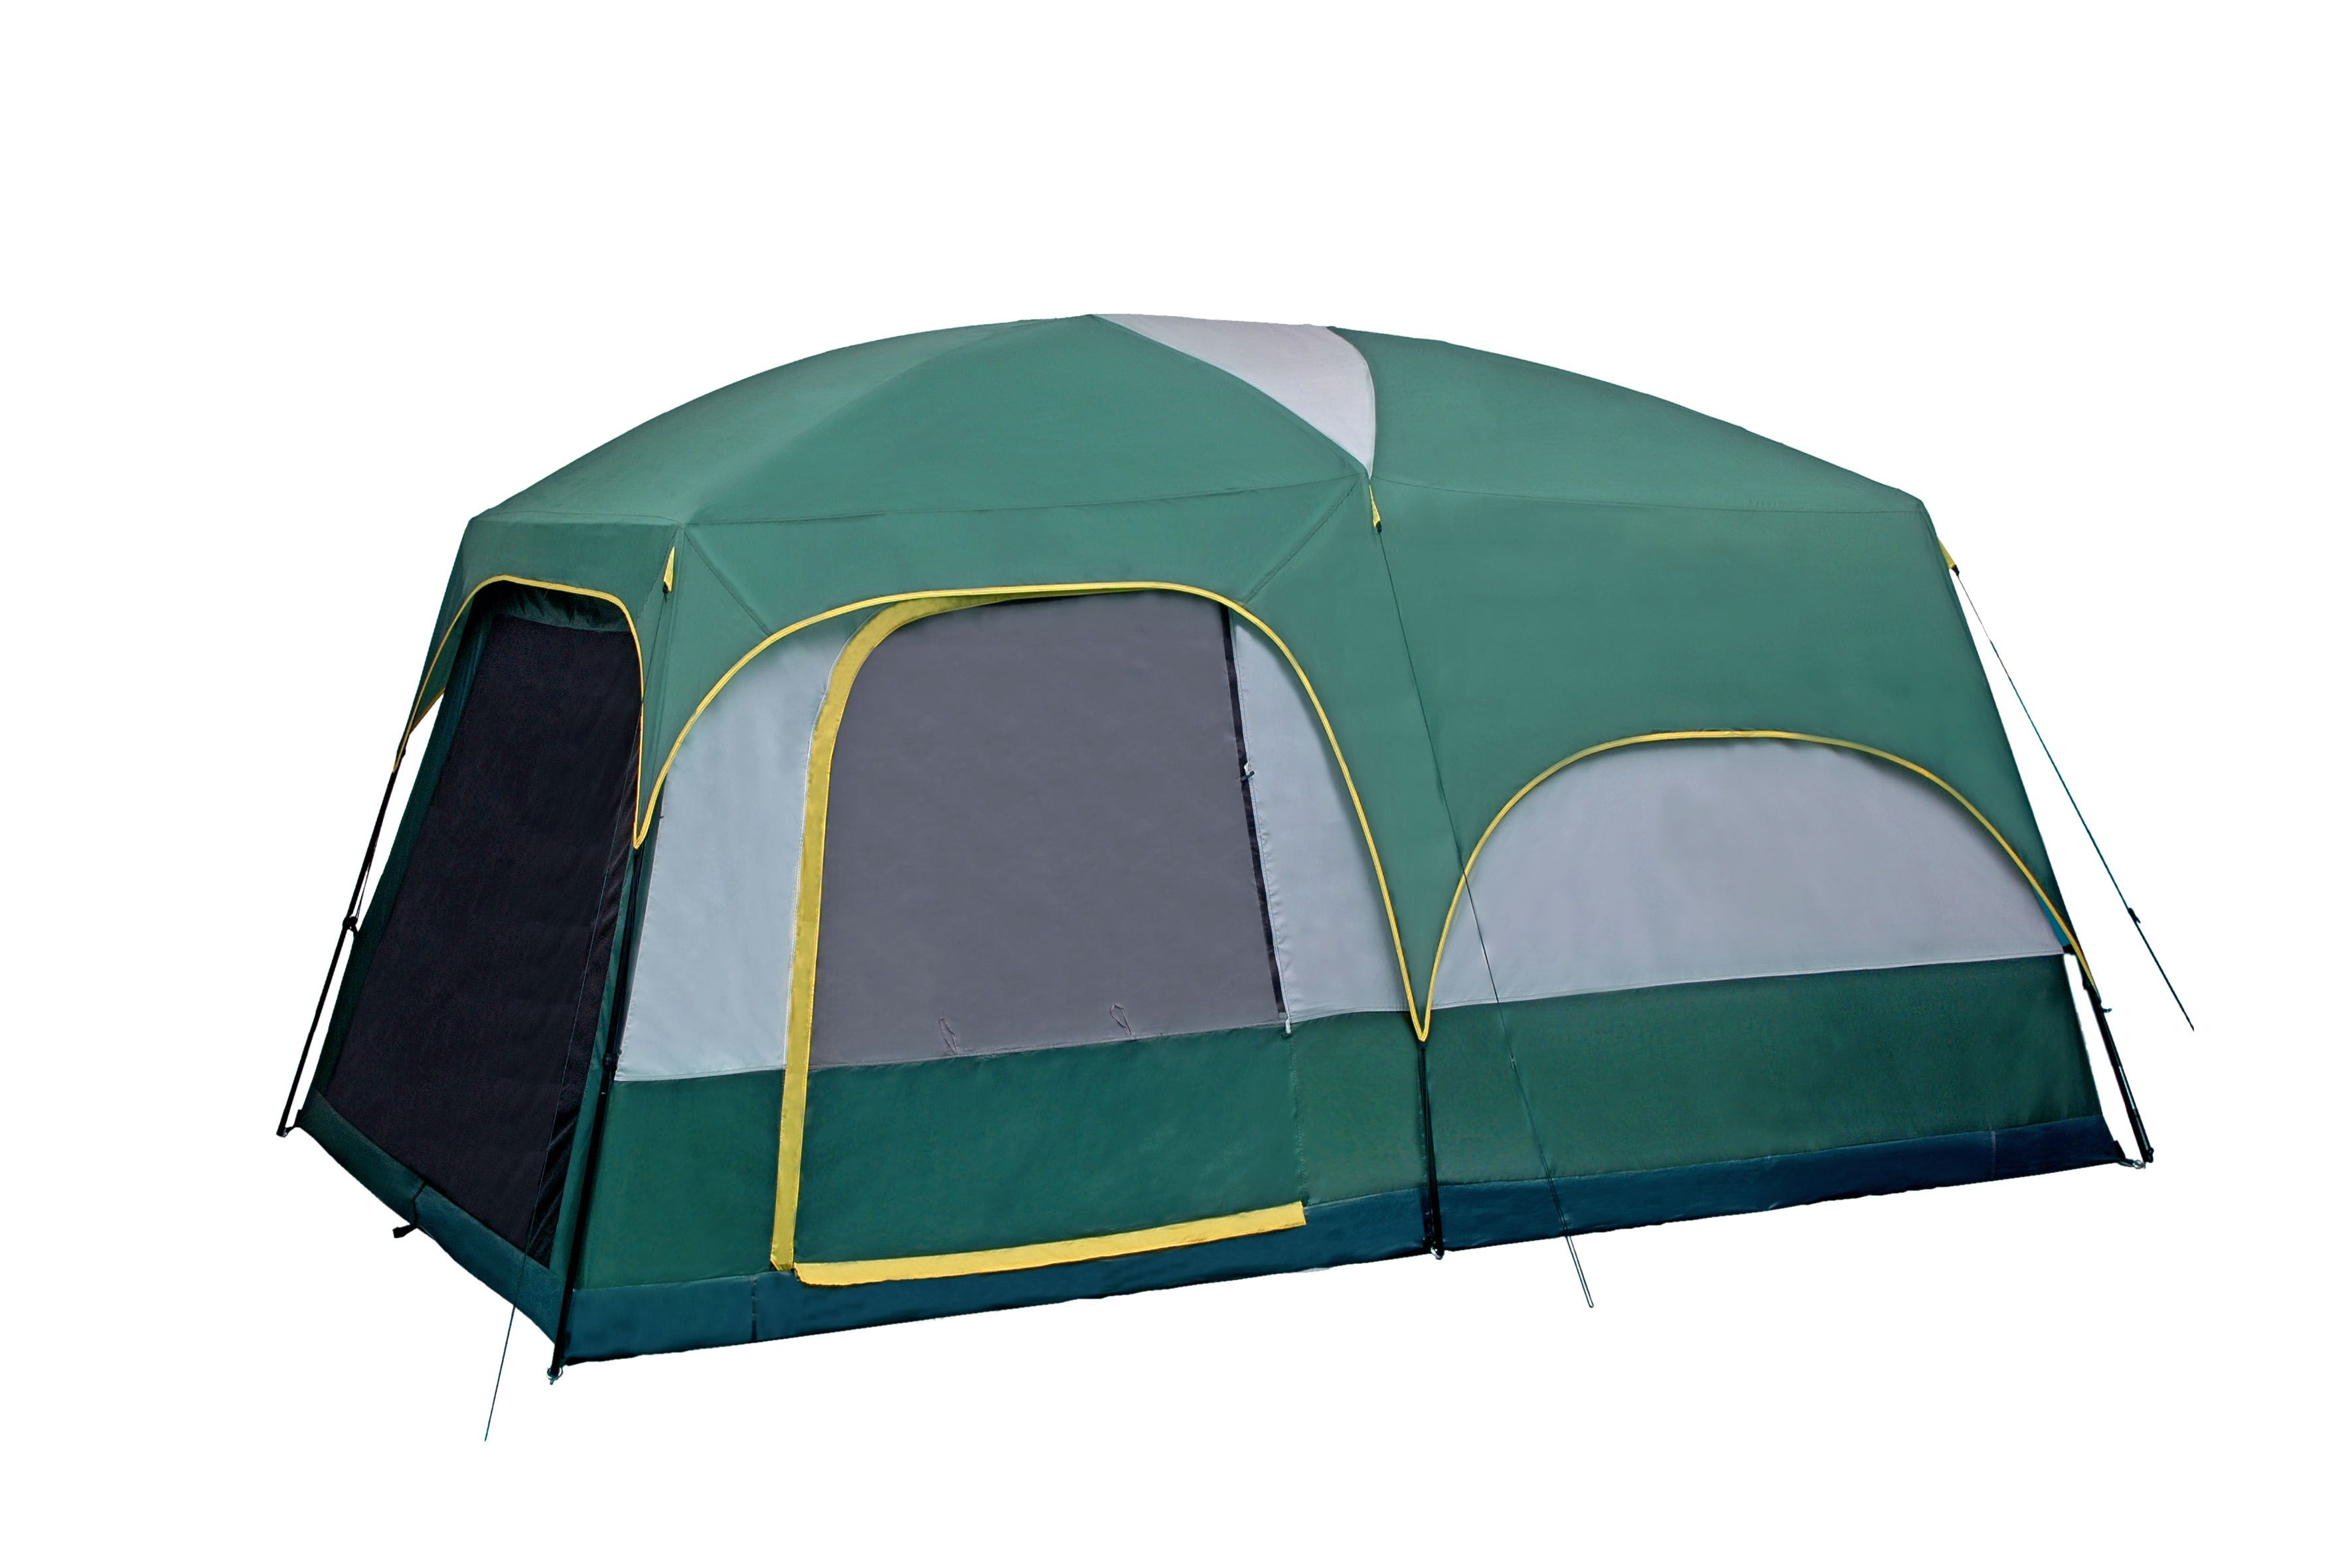 Superieur 2 Room Camping Tents Clearance View For More Greatgear At  Todayscampinggear.com